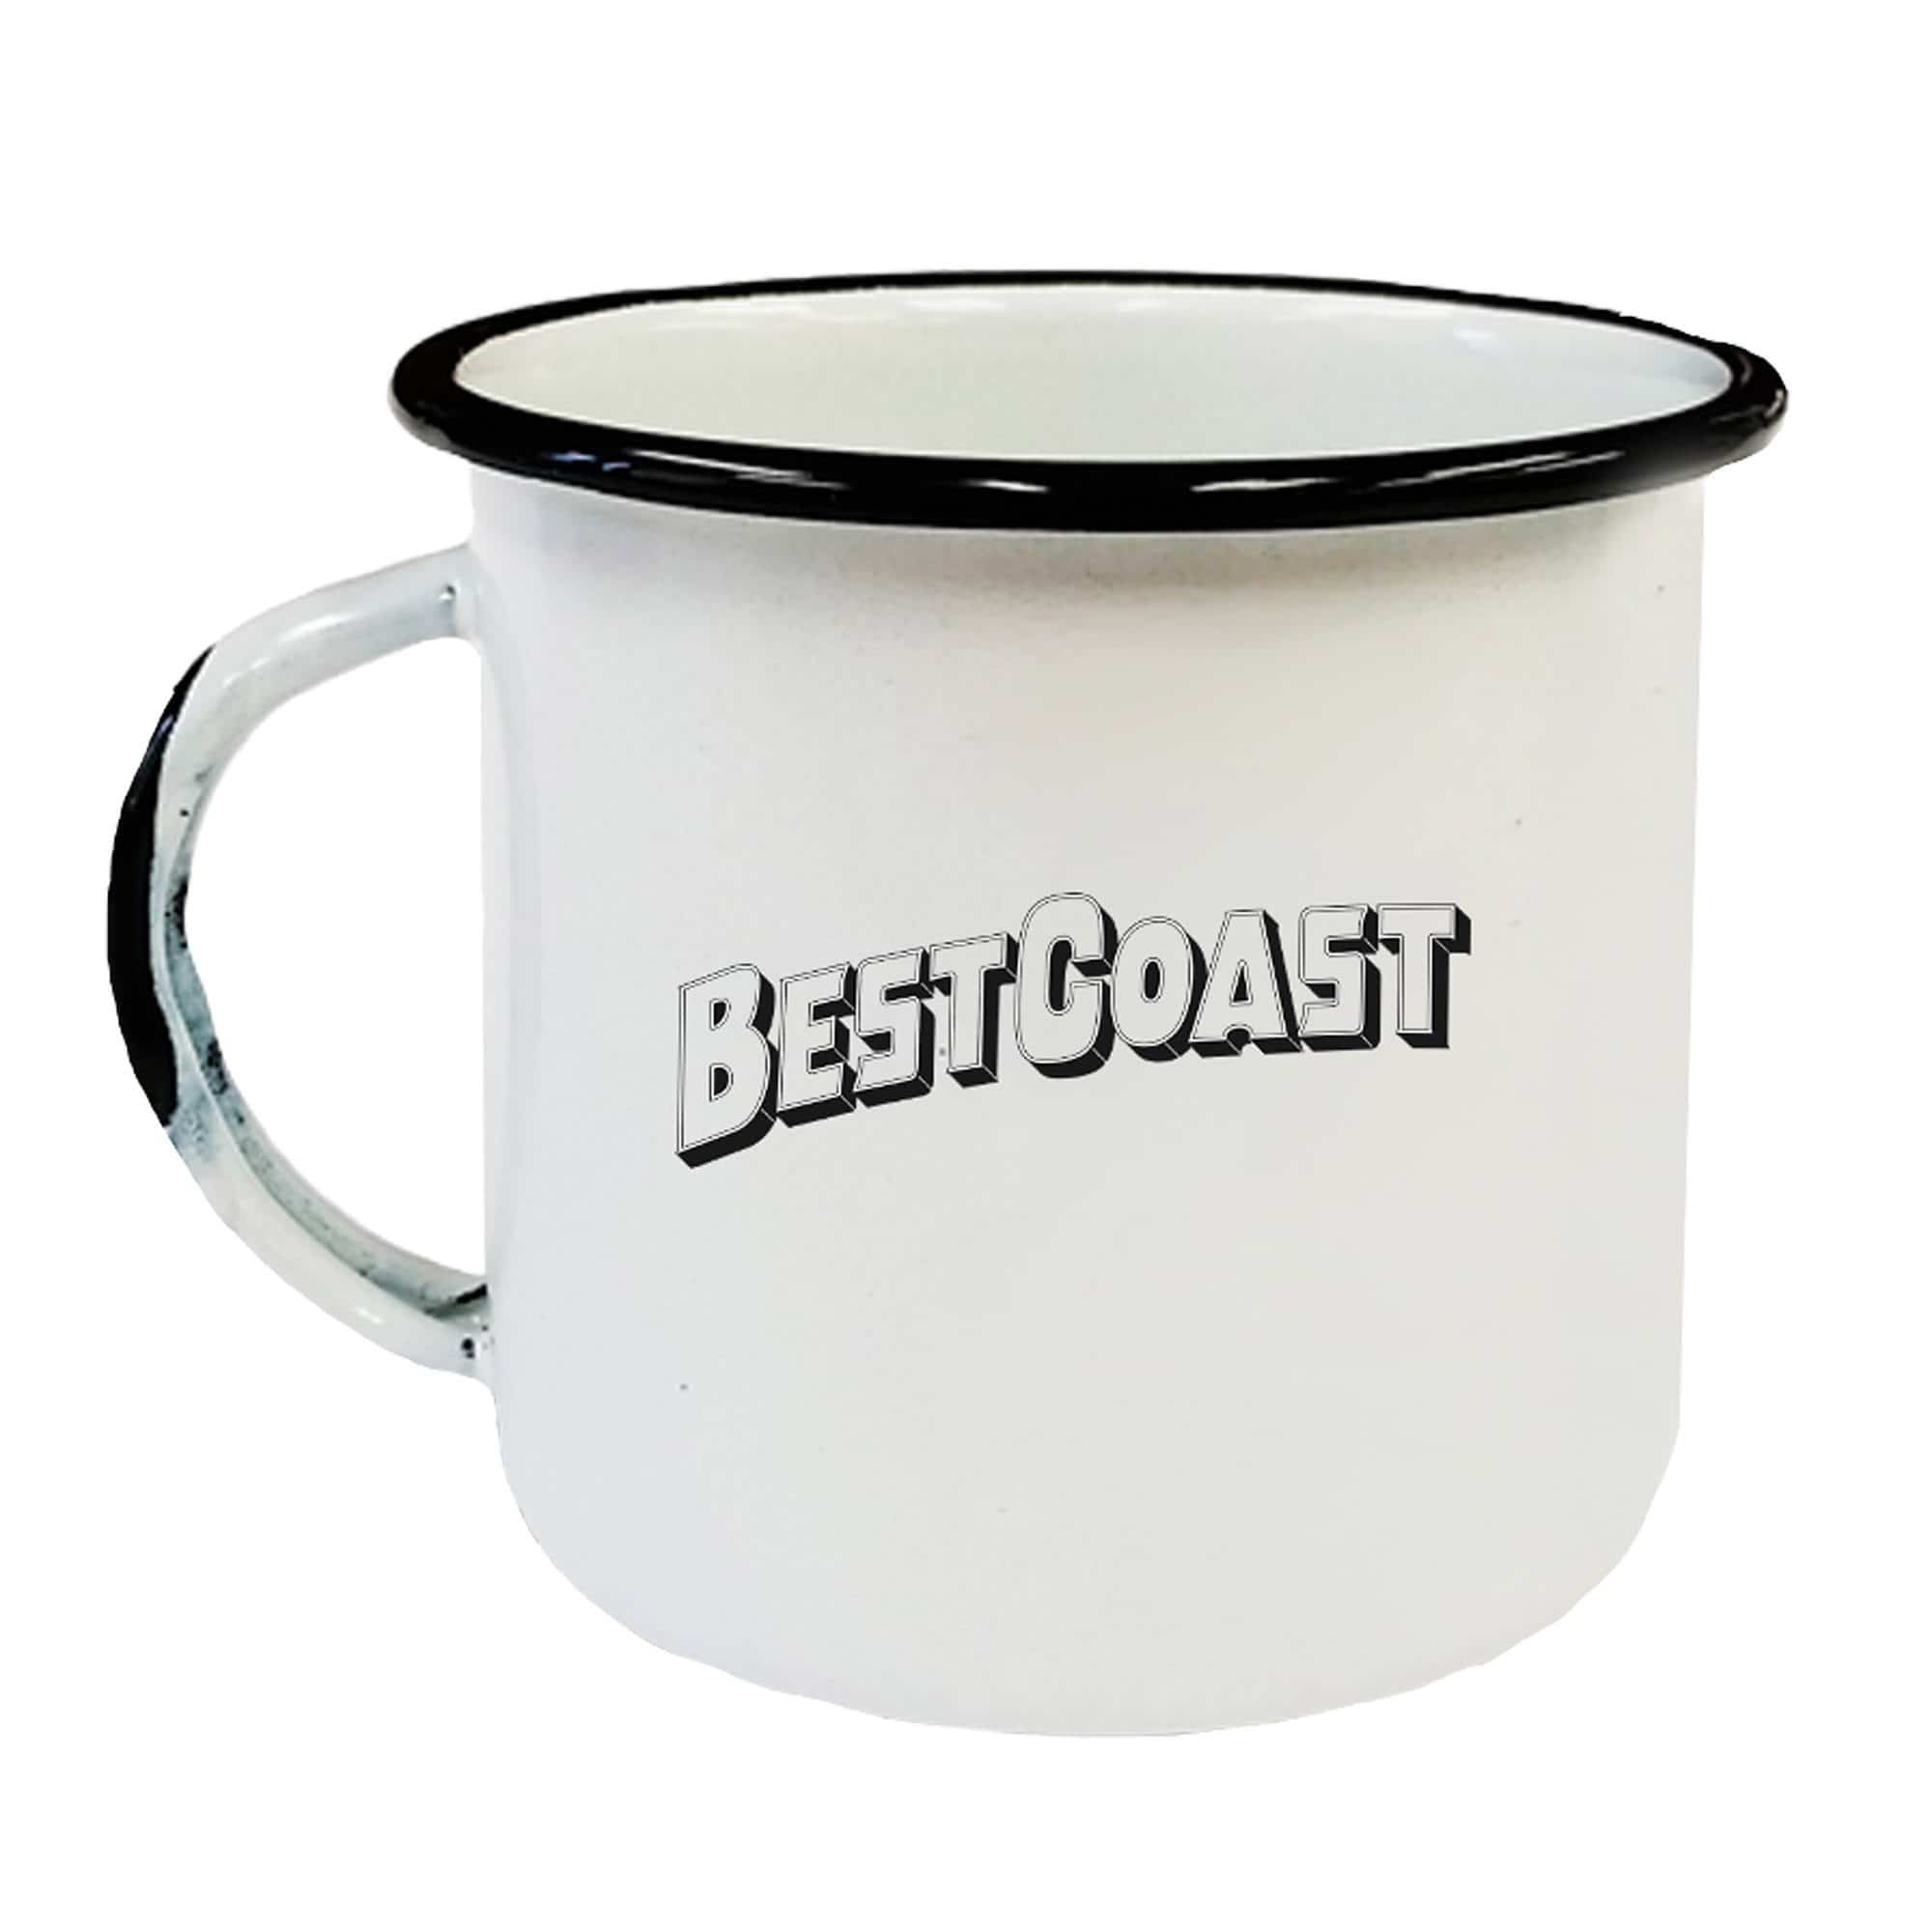 Best Coast Enamel Mug